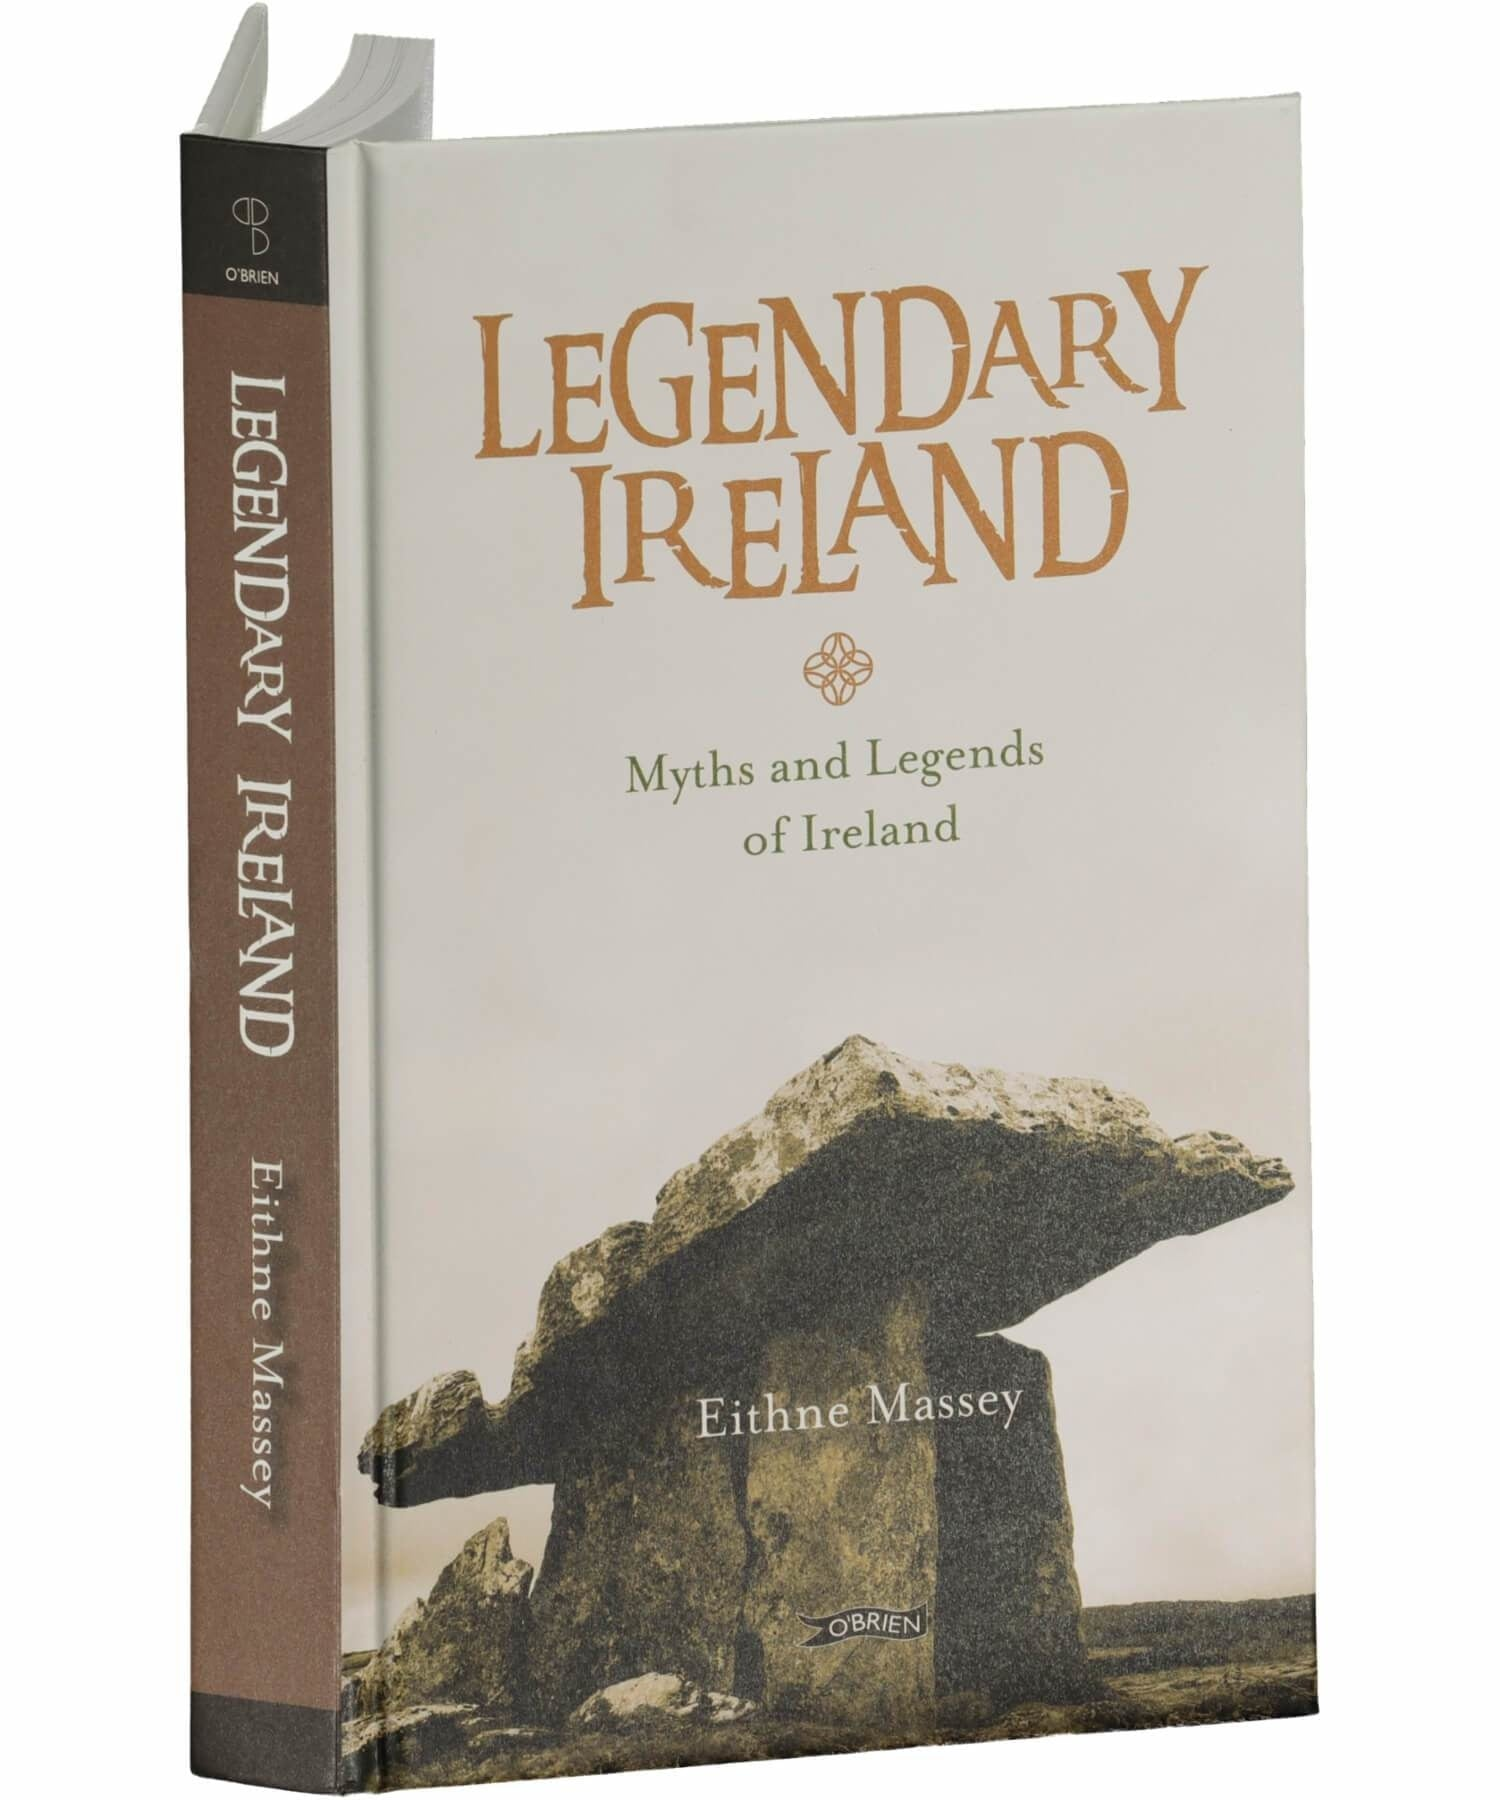 Legendary Ireland - [The O'Brien Press] - Books & Stationery - Irish Gifts